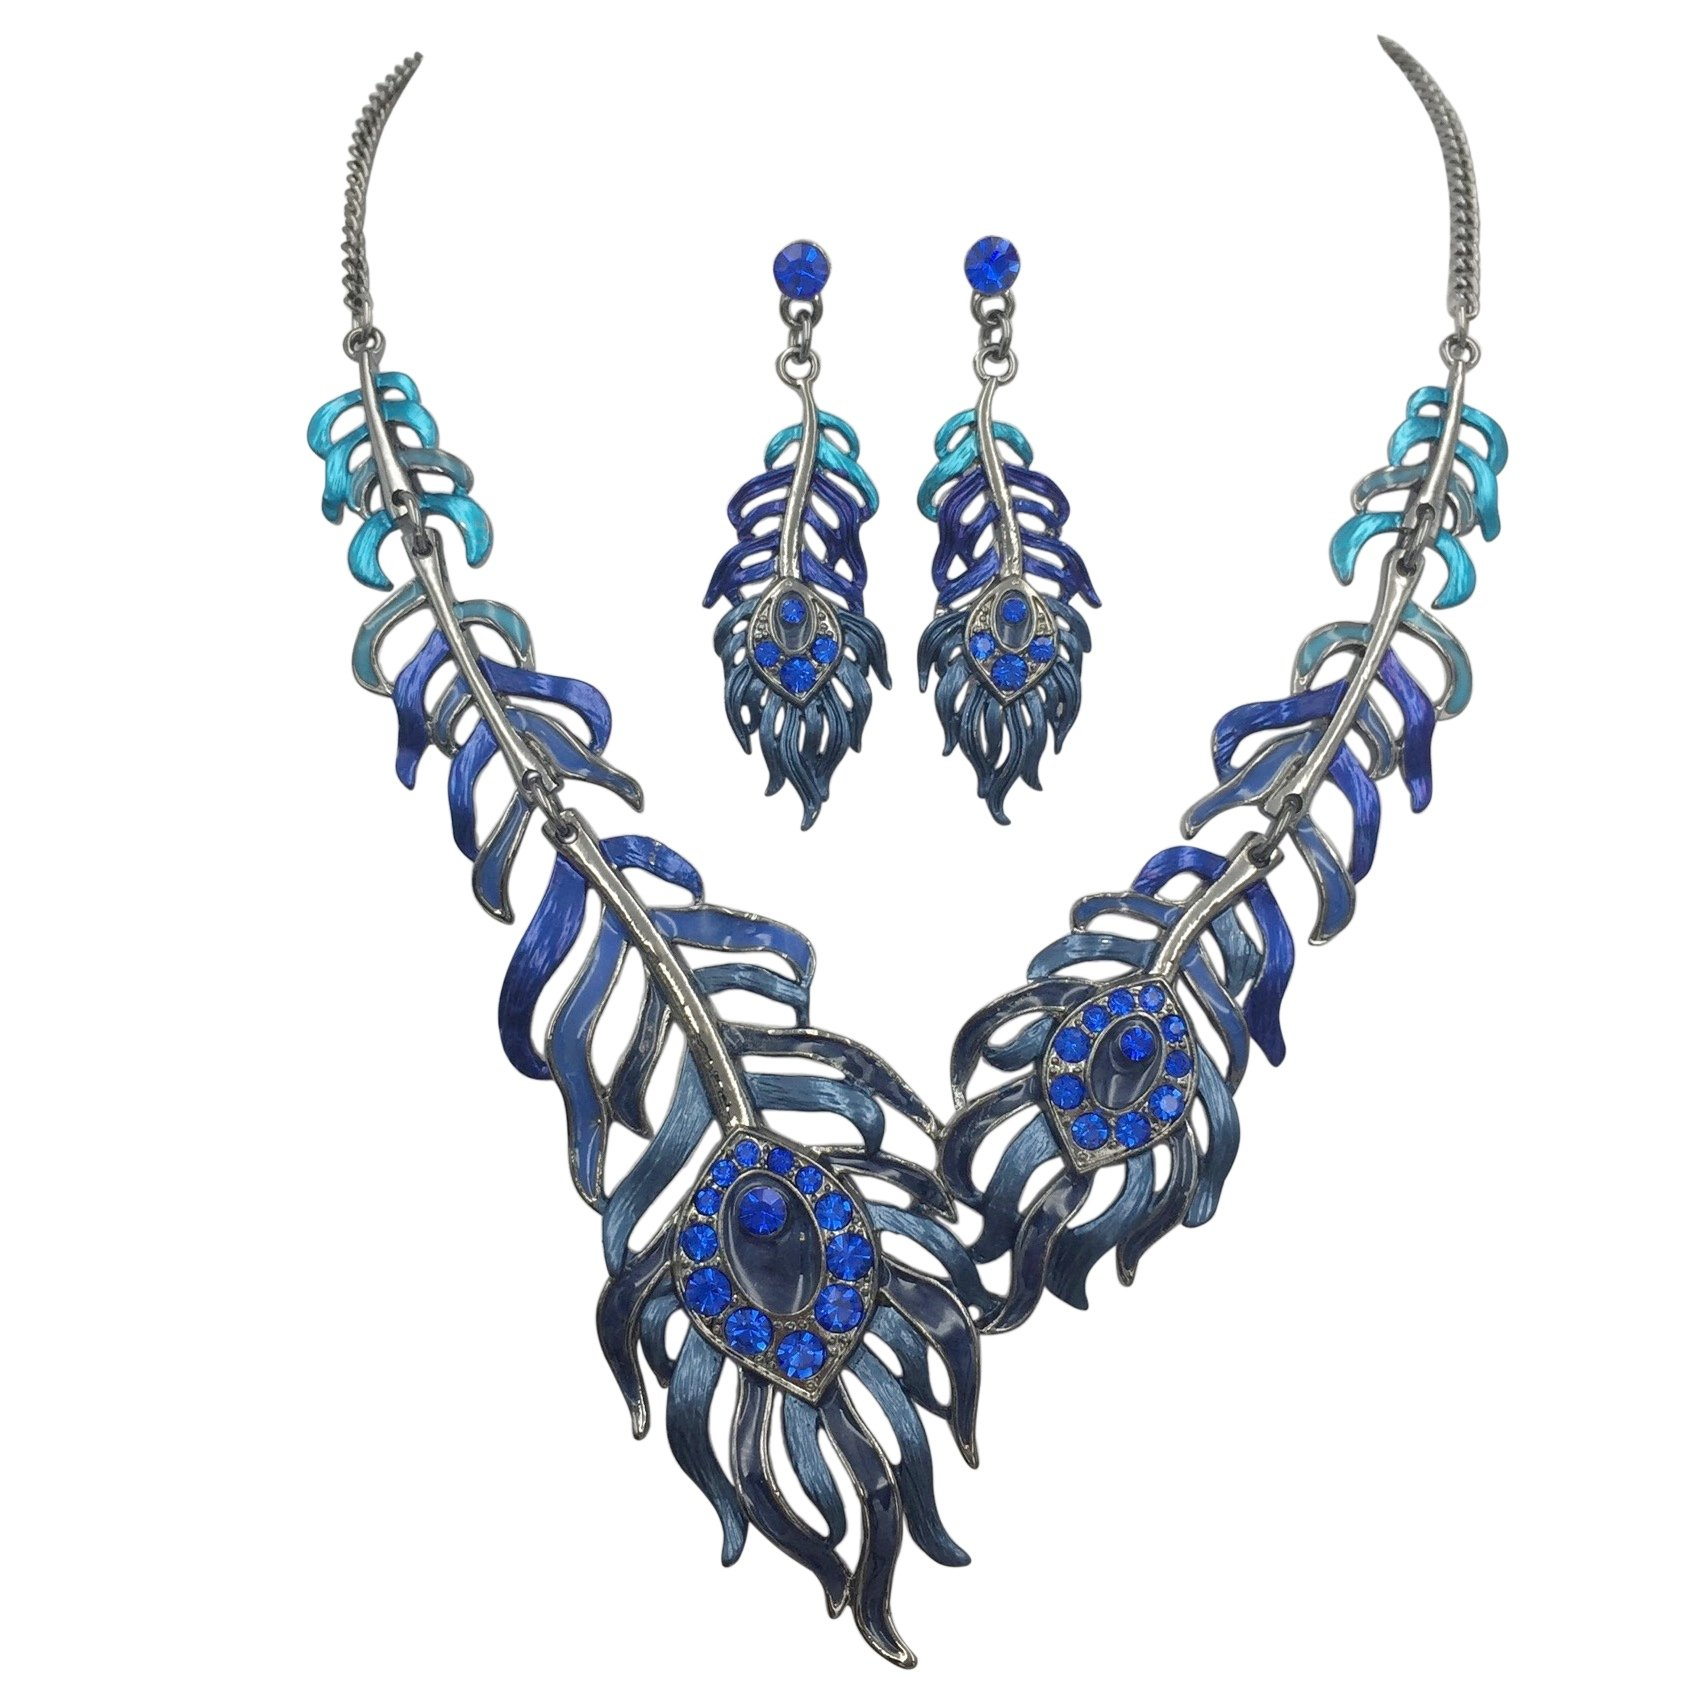 Gypsy Jewels Feather Leaves Statement Short Necklace & Earrings Set (Blue Tones)